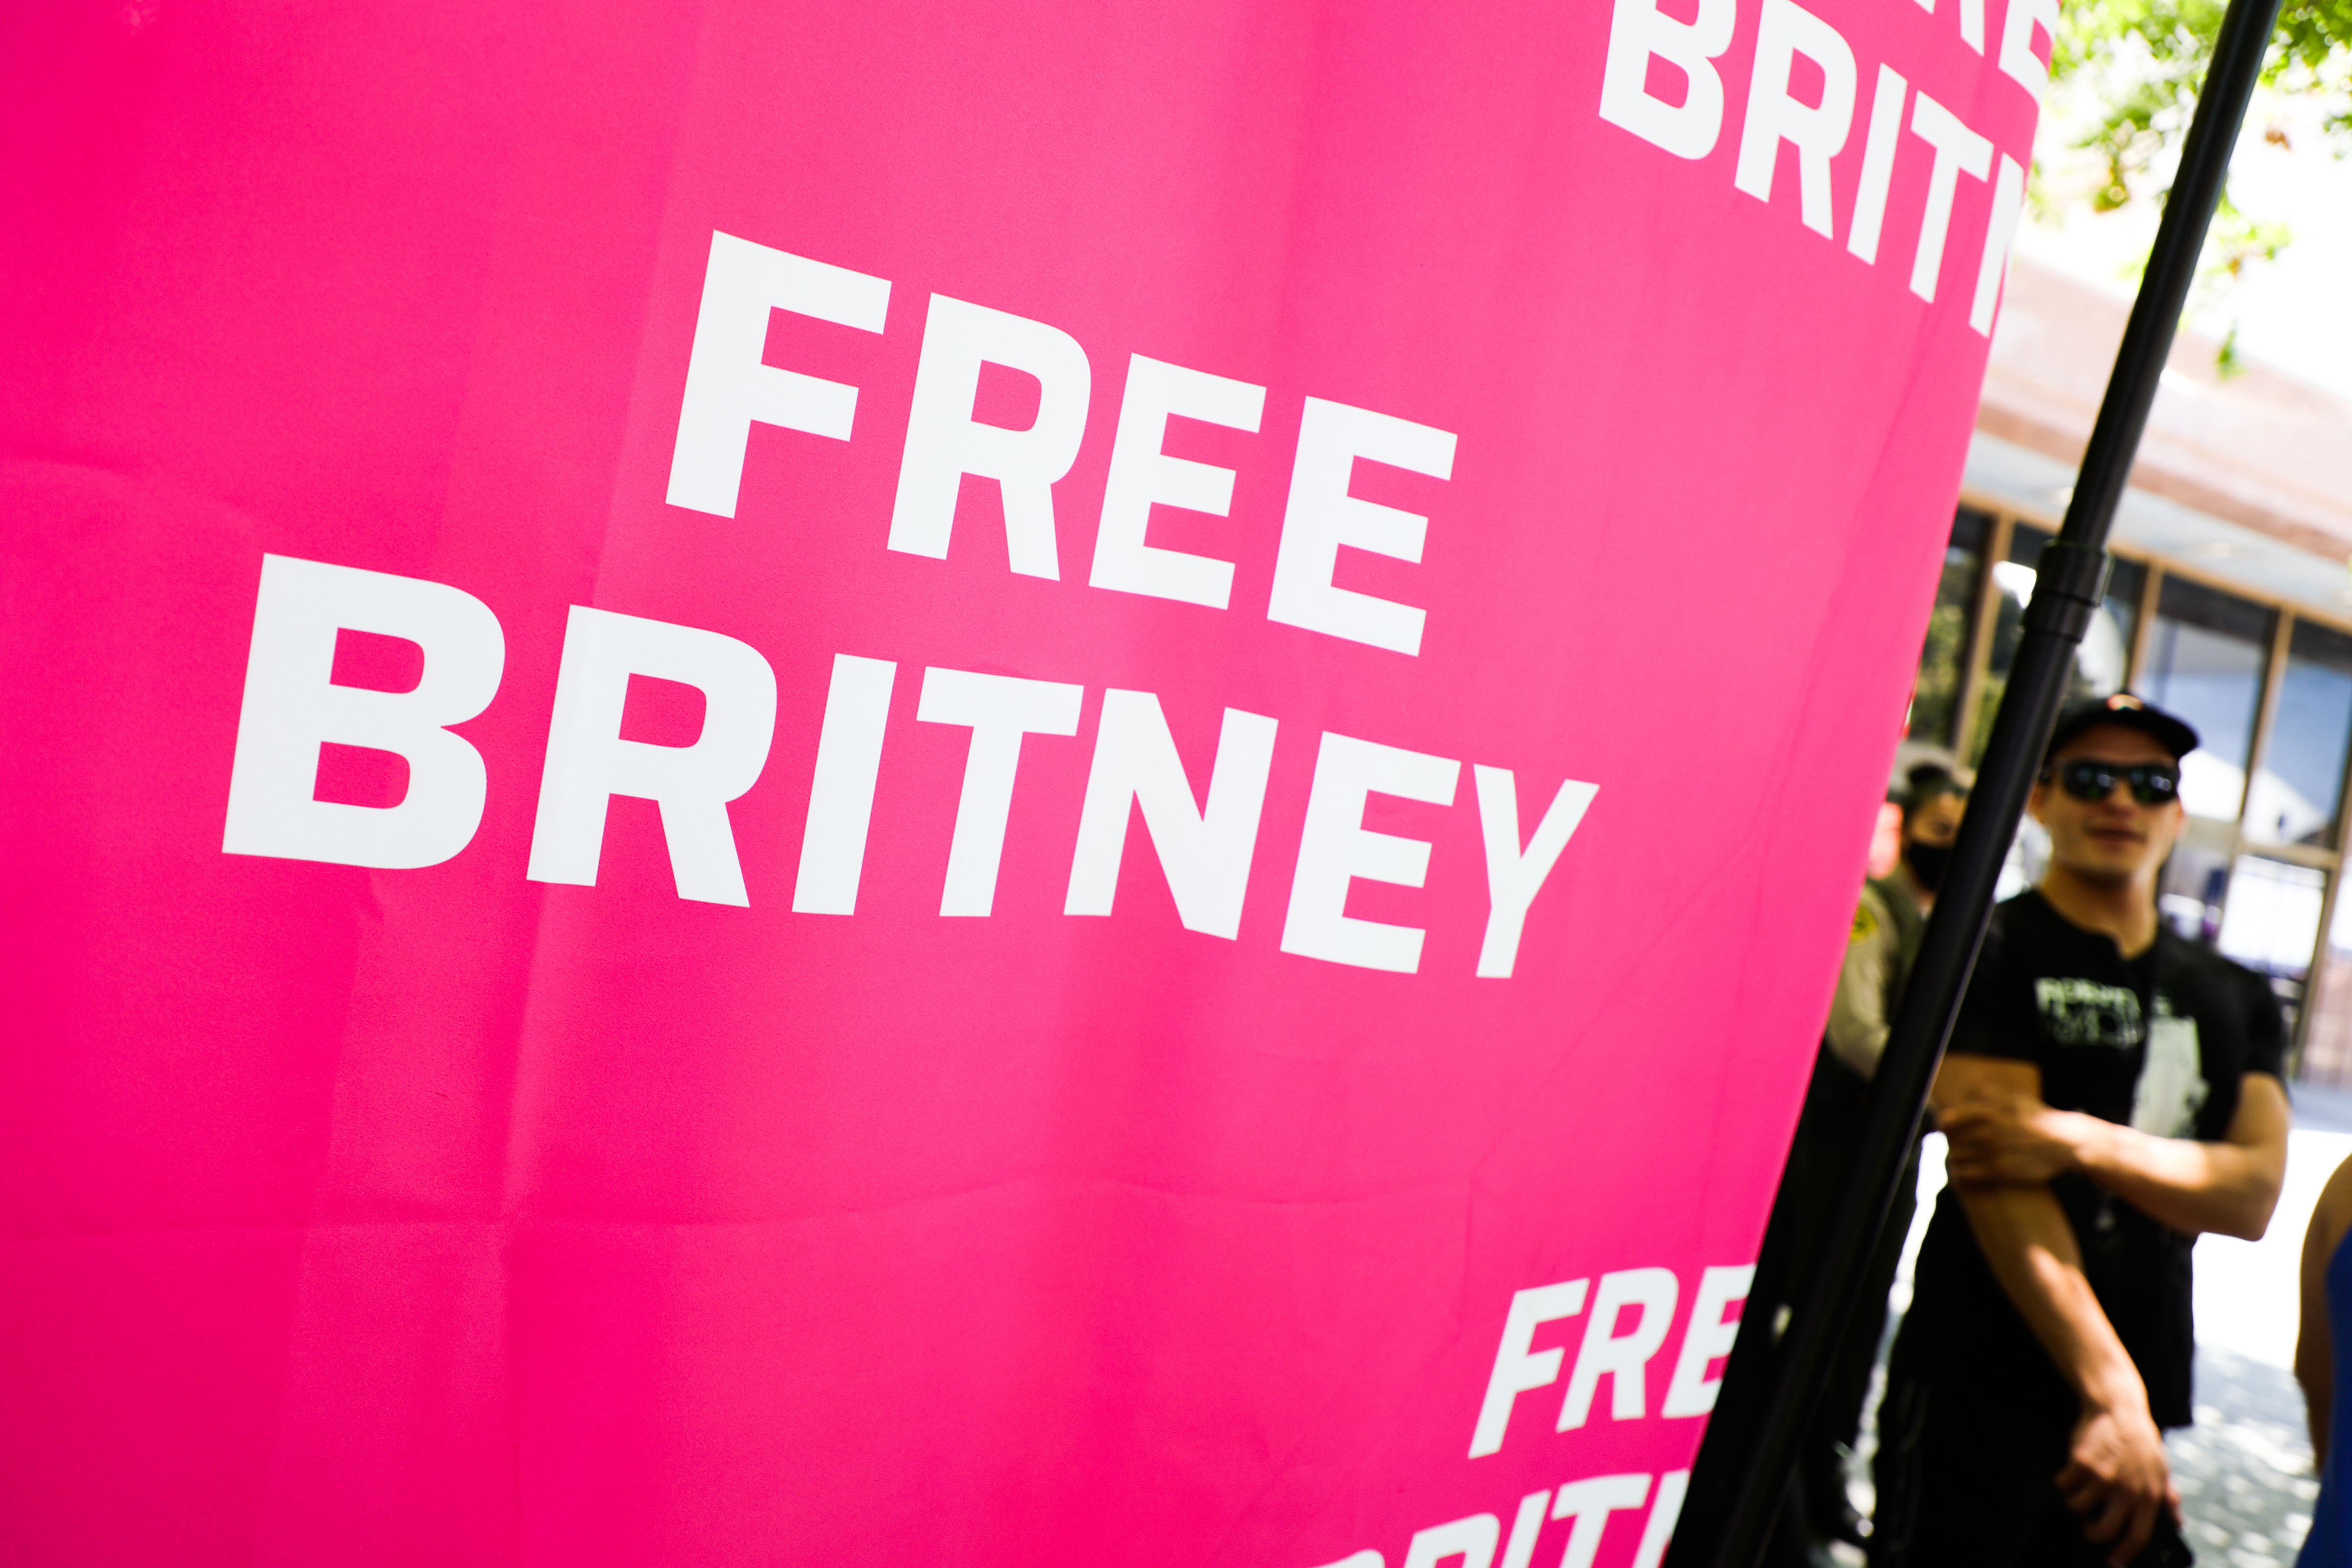 #FreeBritney Rally In Los Angeles During Conservatorship Hearing